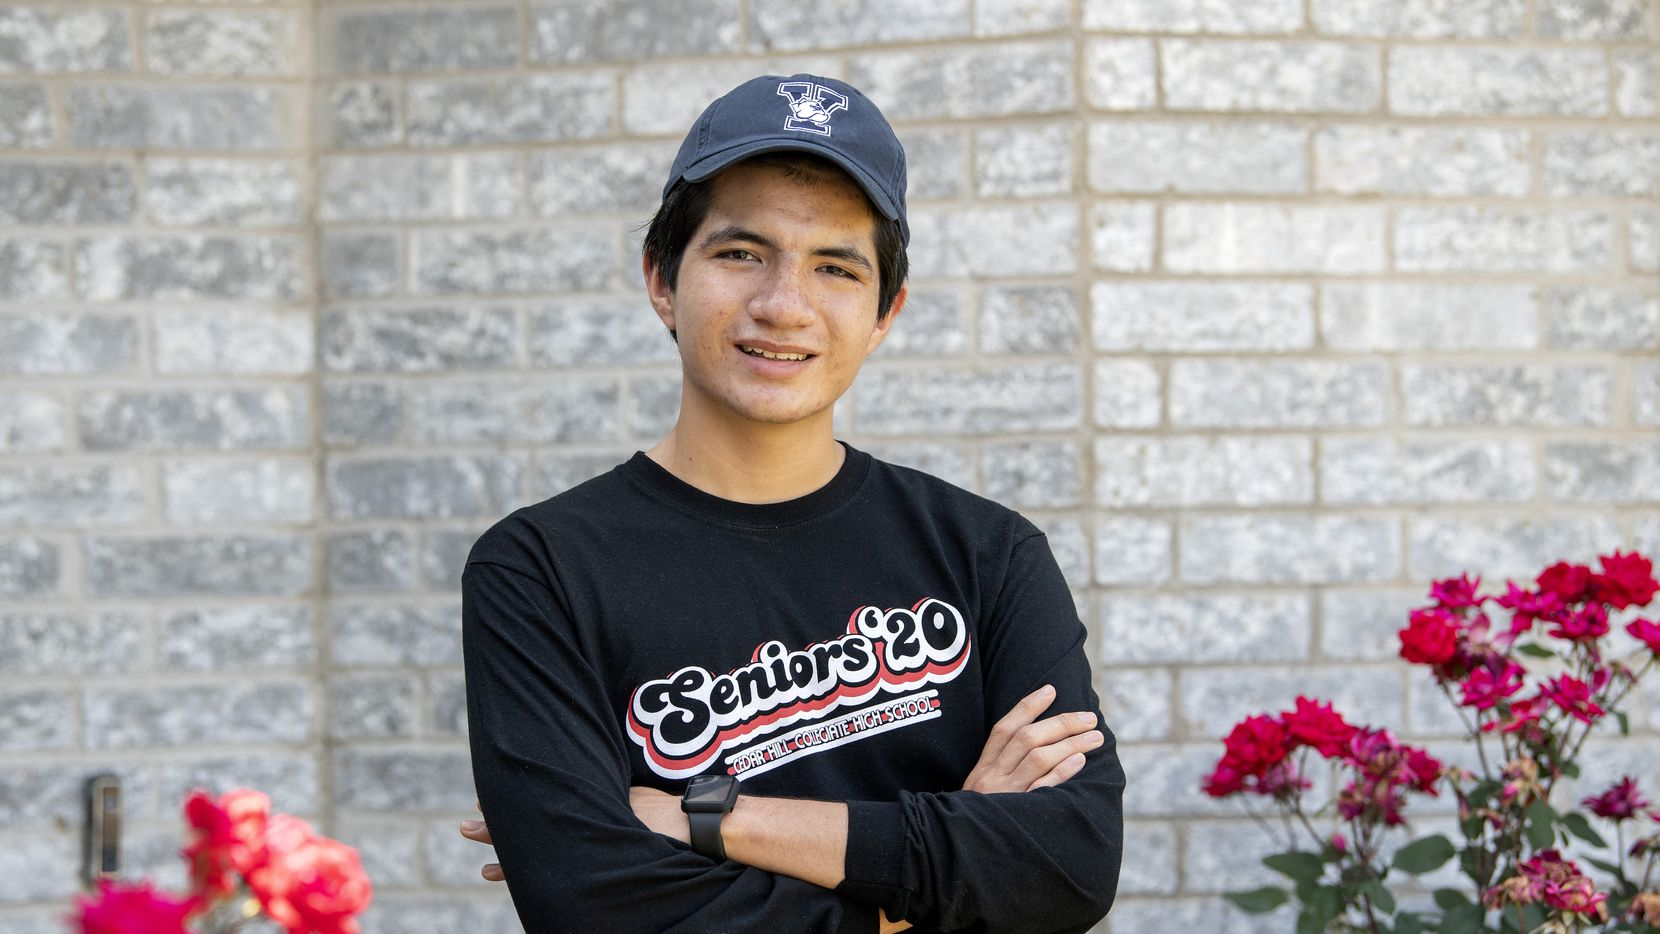 Richard Cardoso, an 18-year-old senior at Cedar Hill Collegiate High School, poses for a portrait in front of his home on May 7, 2020 in Cedar Hill, Texas. Graduating in the midst of the coronavirus pandemic, Cardoso plans to attend Yale and major in physics and philosophy and ultimately become an attorney to help people who immigrate to the United States, like his parents did in the 1980s.